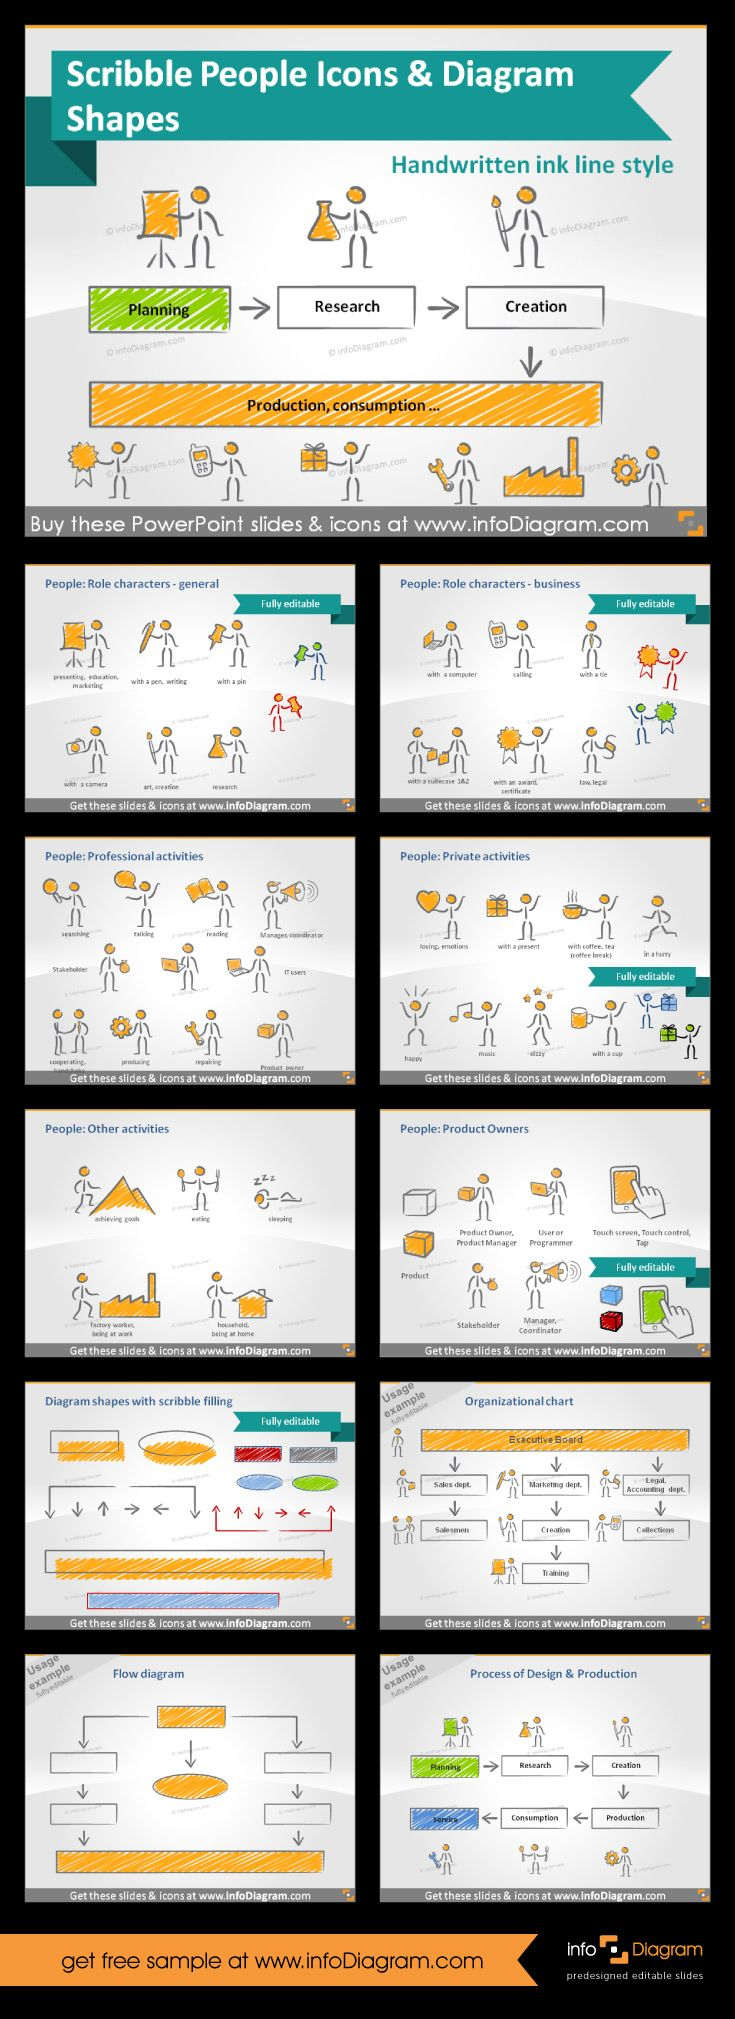 Handwritten scribble icons for PowerPoint. This is a selection of figures of people in different roles in doodle style. It also includes editable ink arrows, markers and process flows. #powerpoint #theme #template #scribble #handwritten #doodle